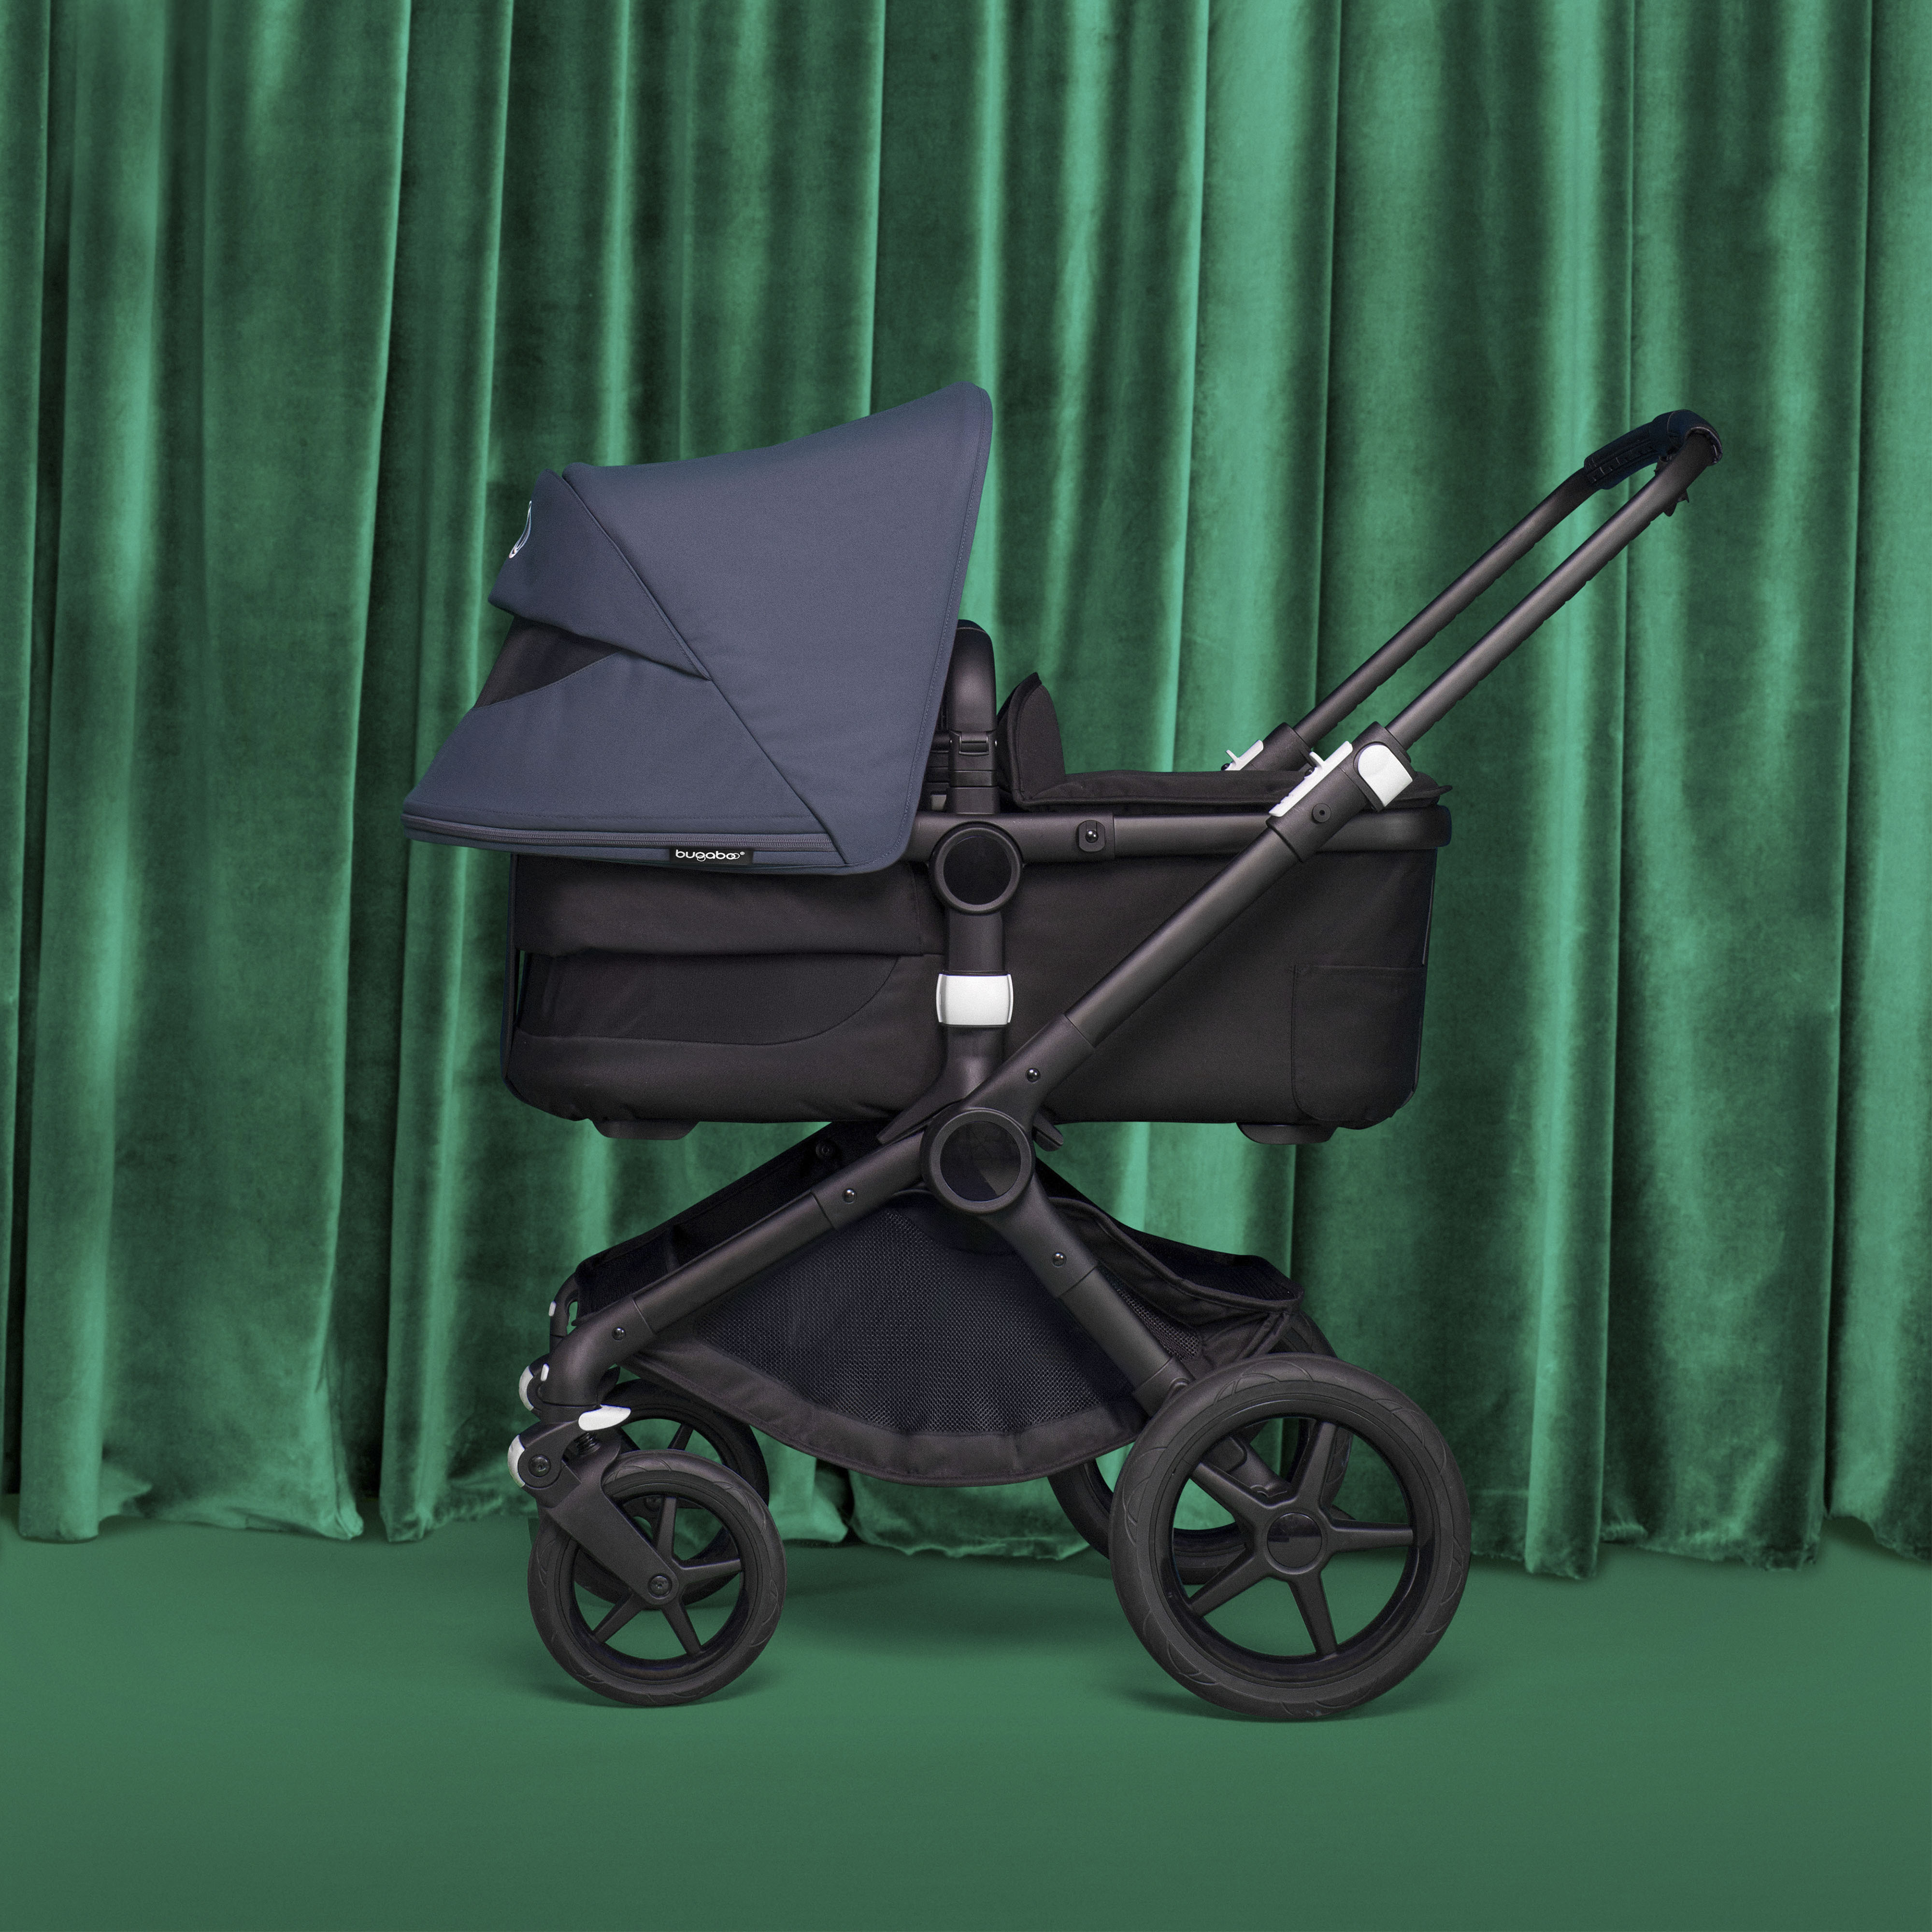 It is here! The new Bugaboo Fox 3